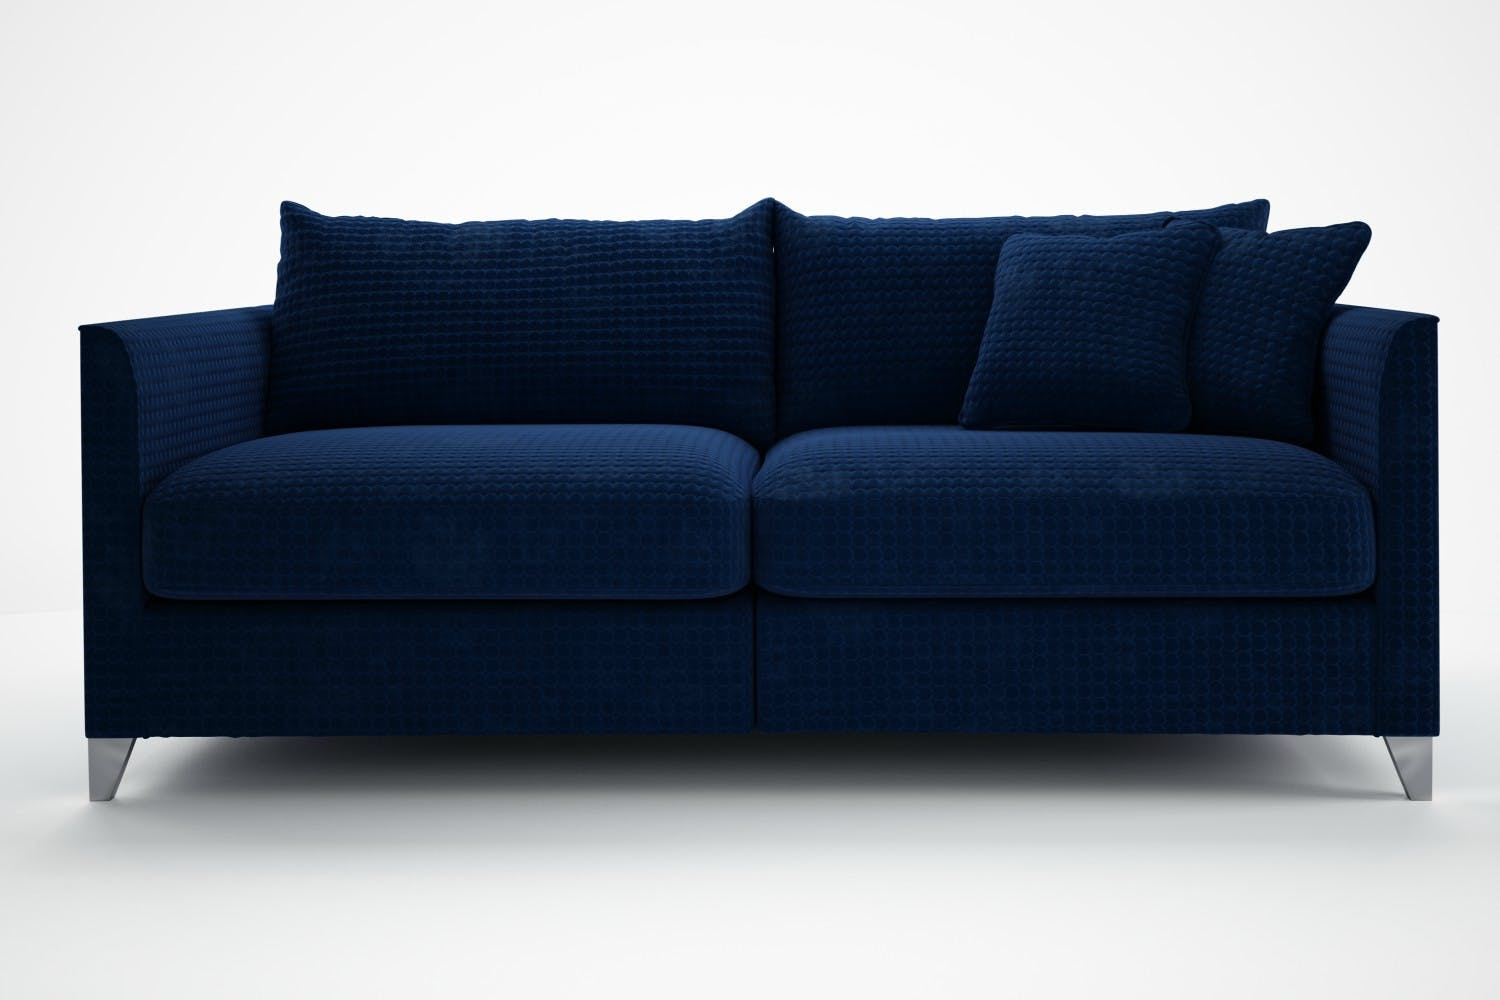 Zoey 3 Seater Sofa | 8 Colour Options